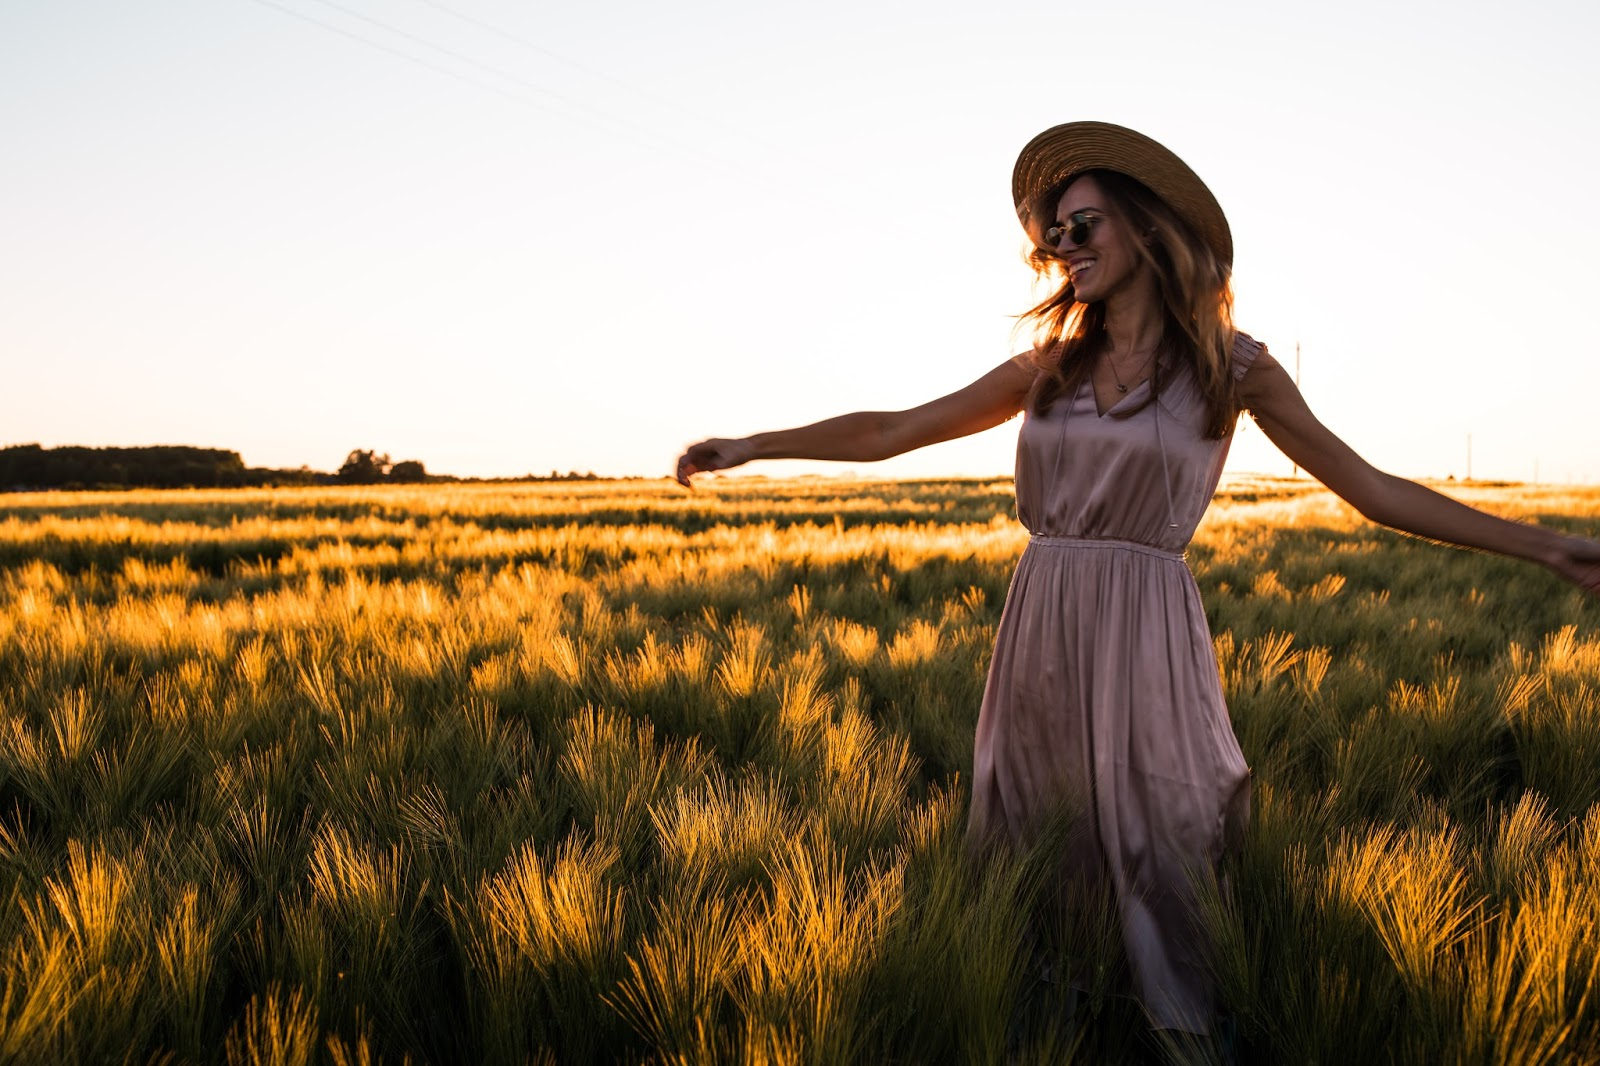 girl summer fun sunset flower field